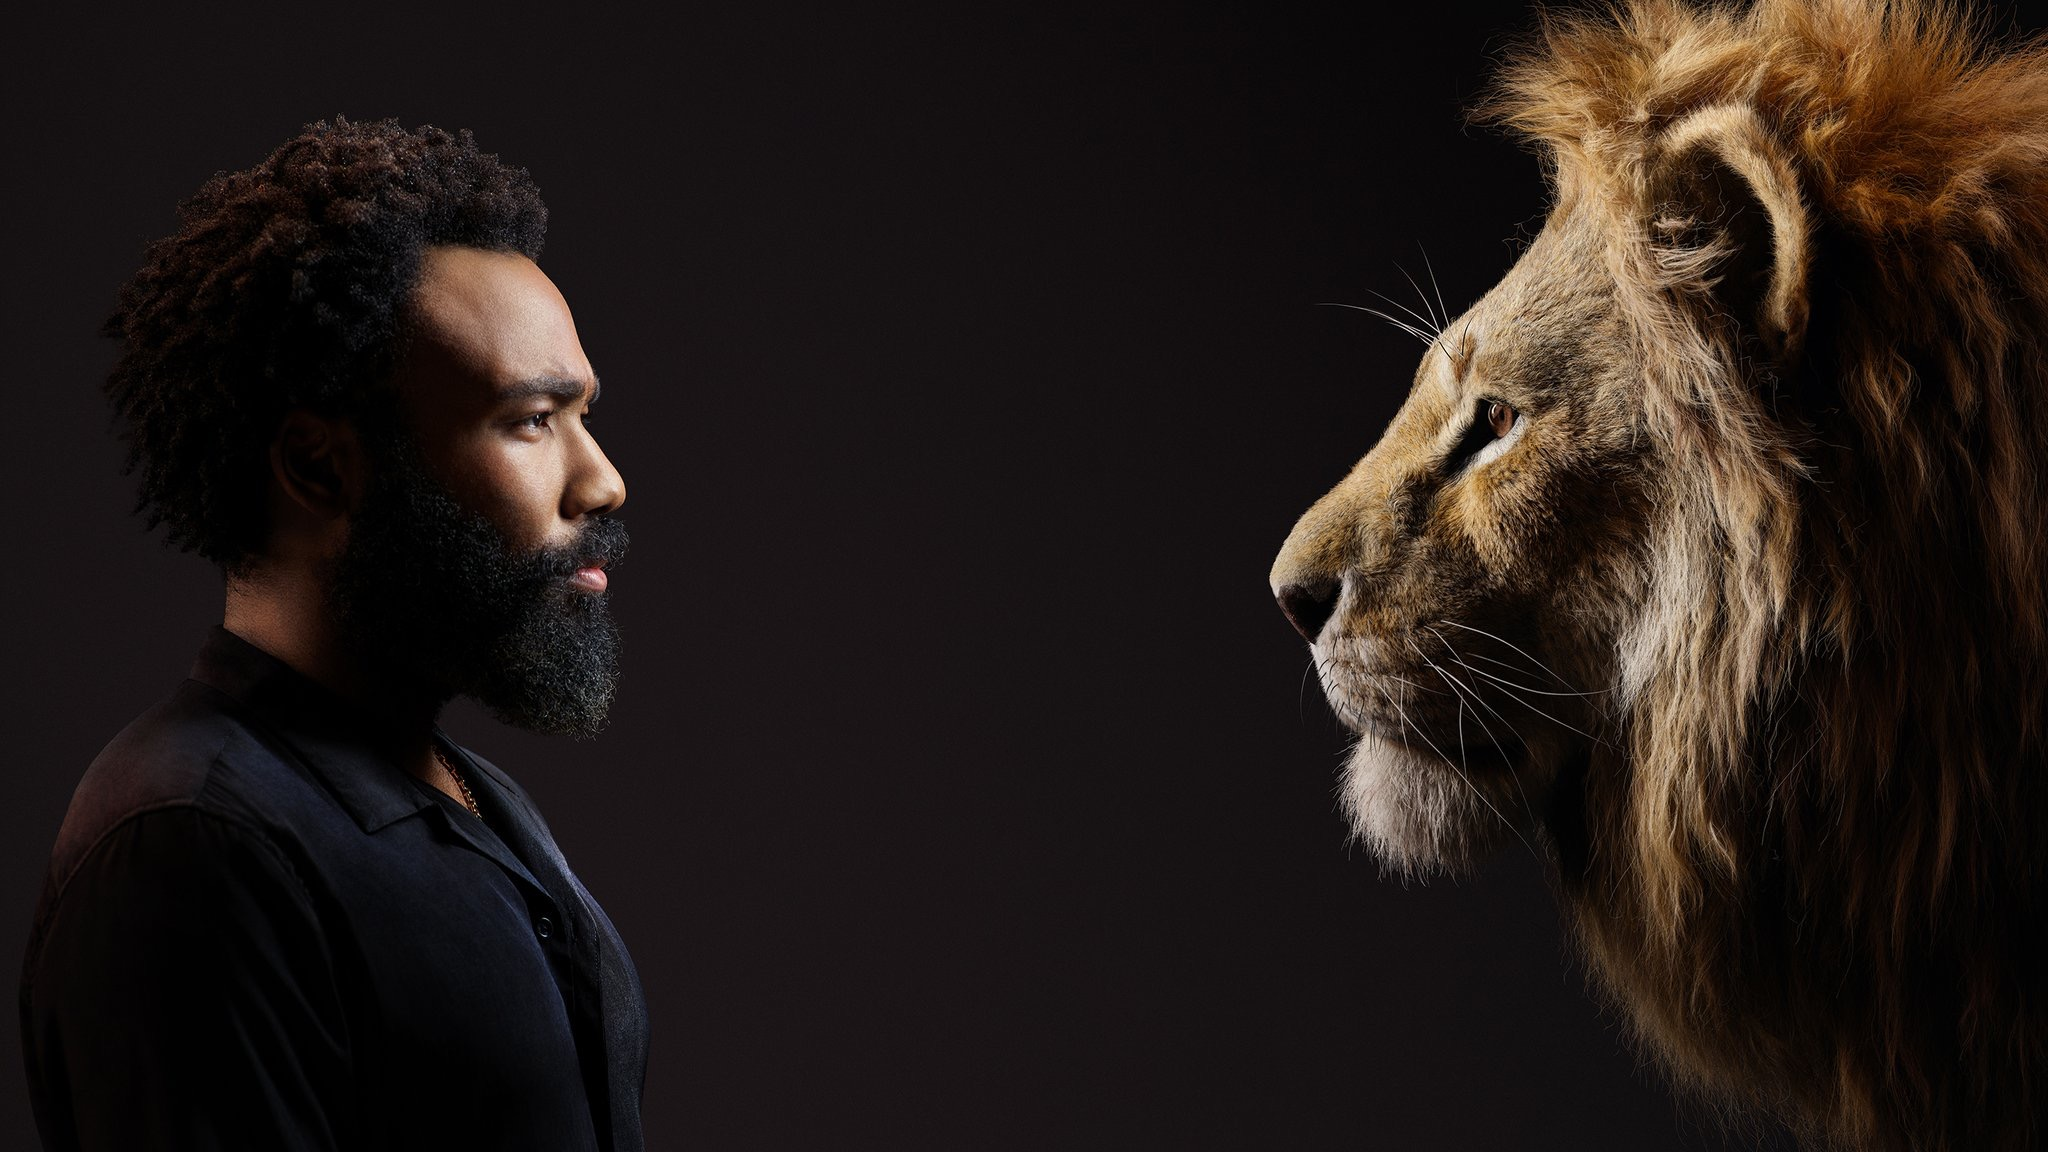 new-promo-posters-the-lion-king-live-action-remake-1.jpeg